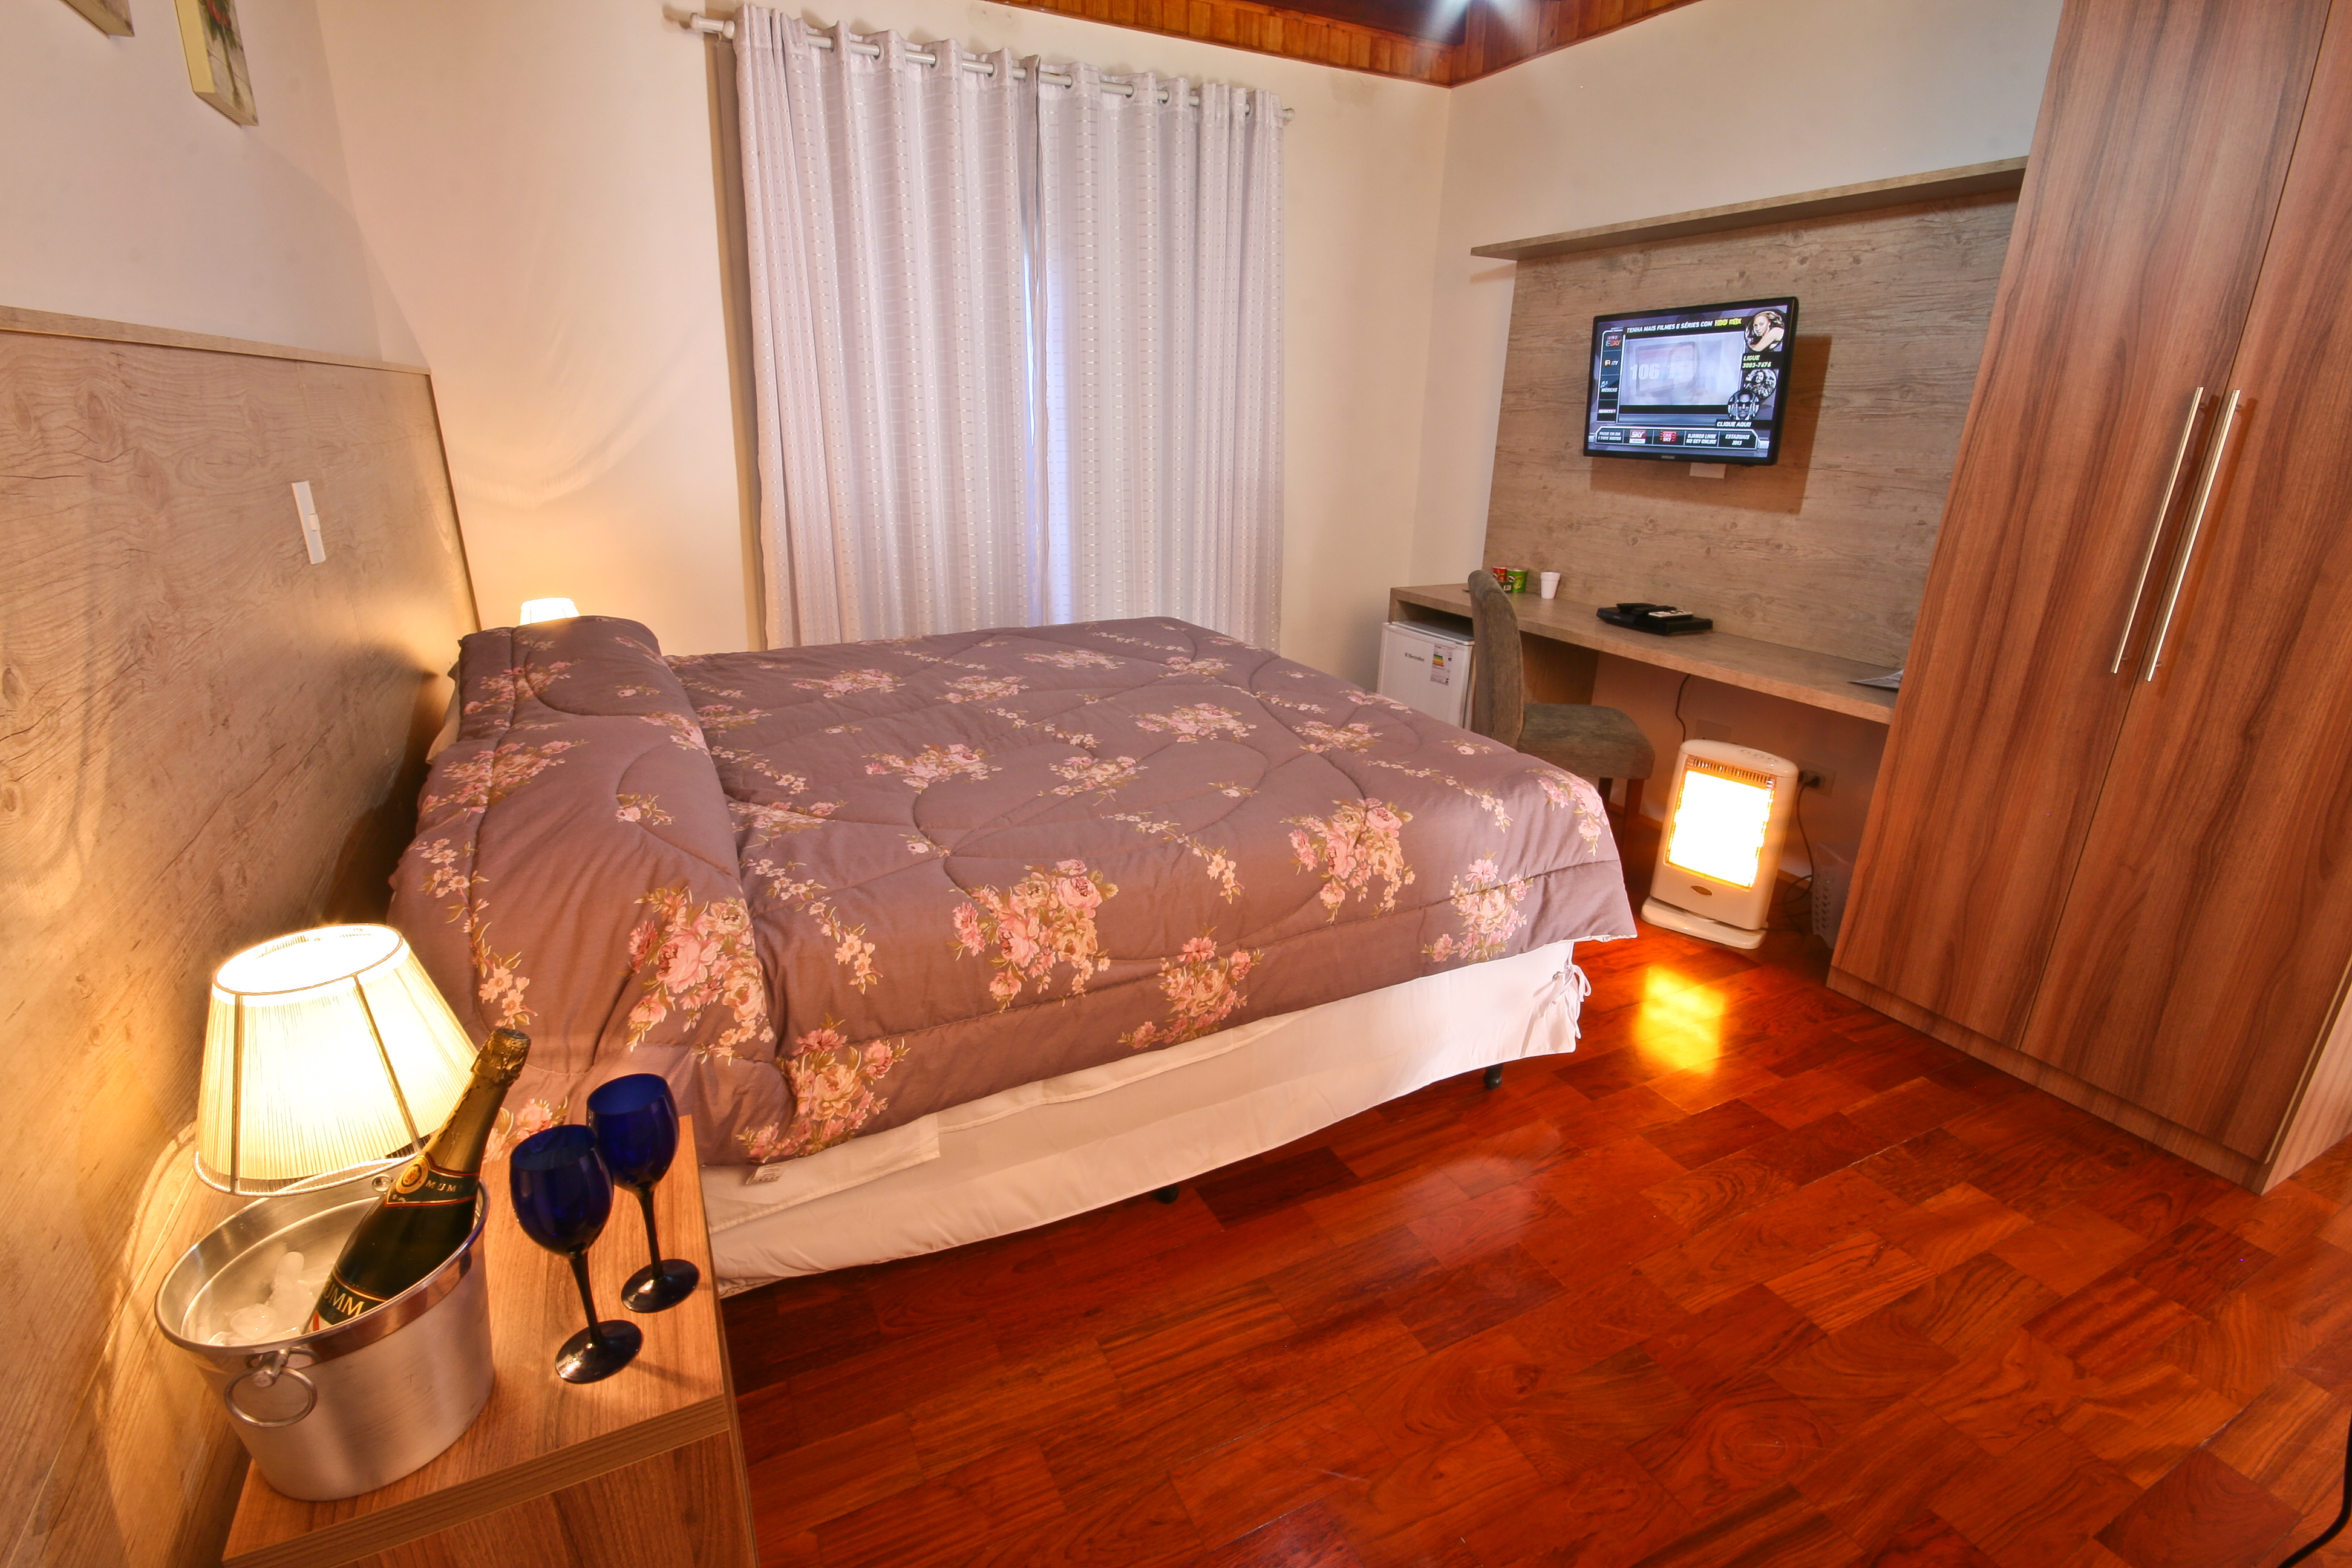 apartamento-golde-forest-campos-do-jordao-04